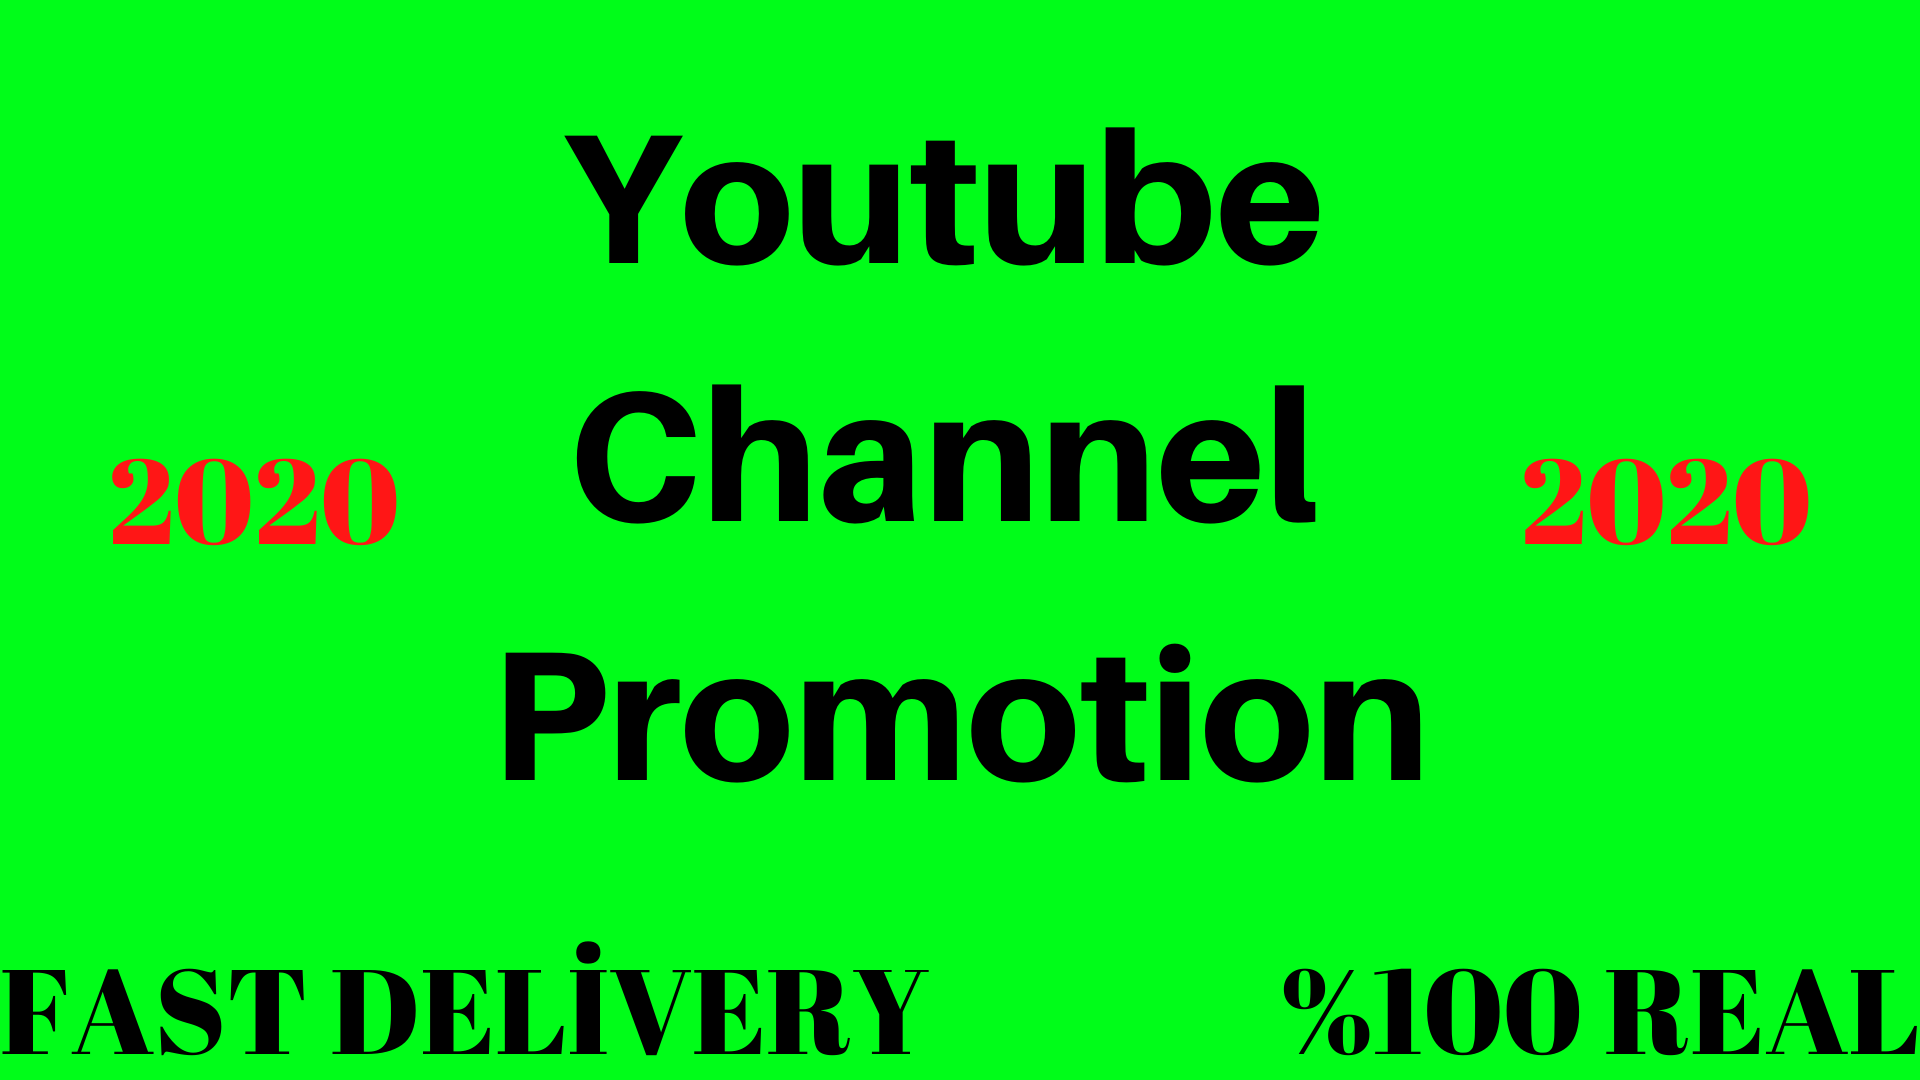 YouTube Channnel Promotion 2020 Method